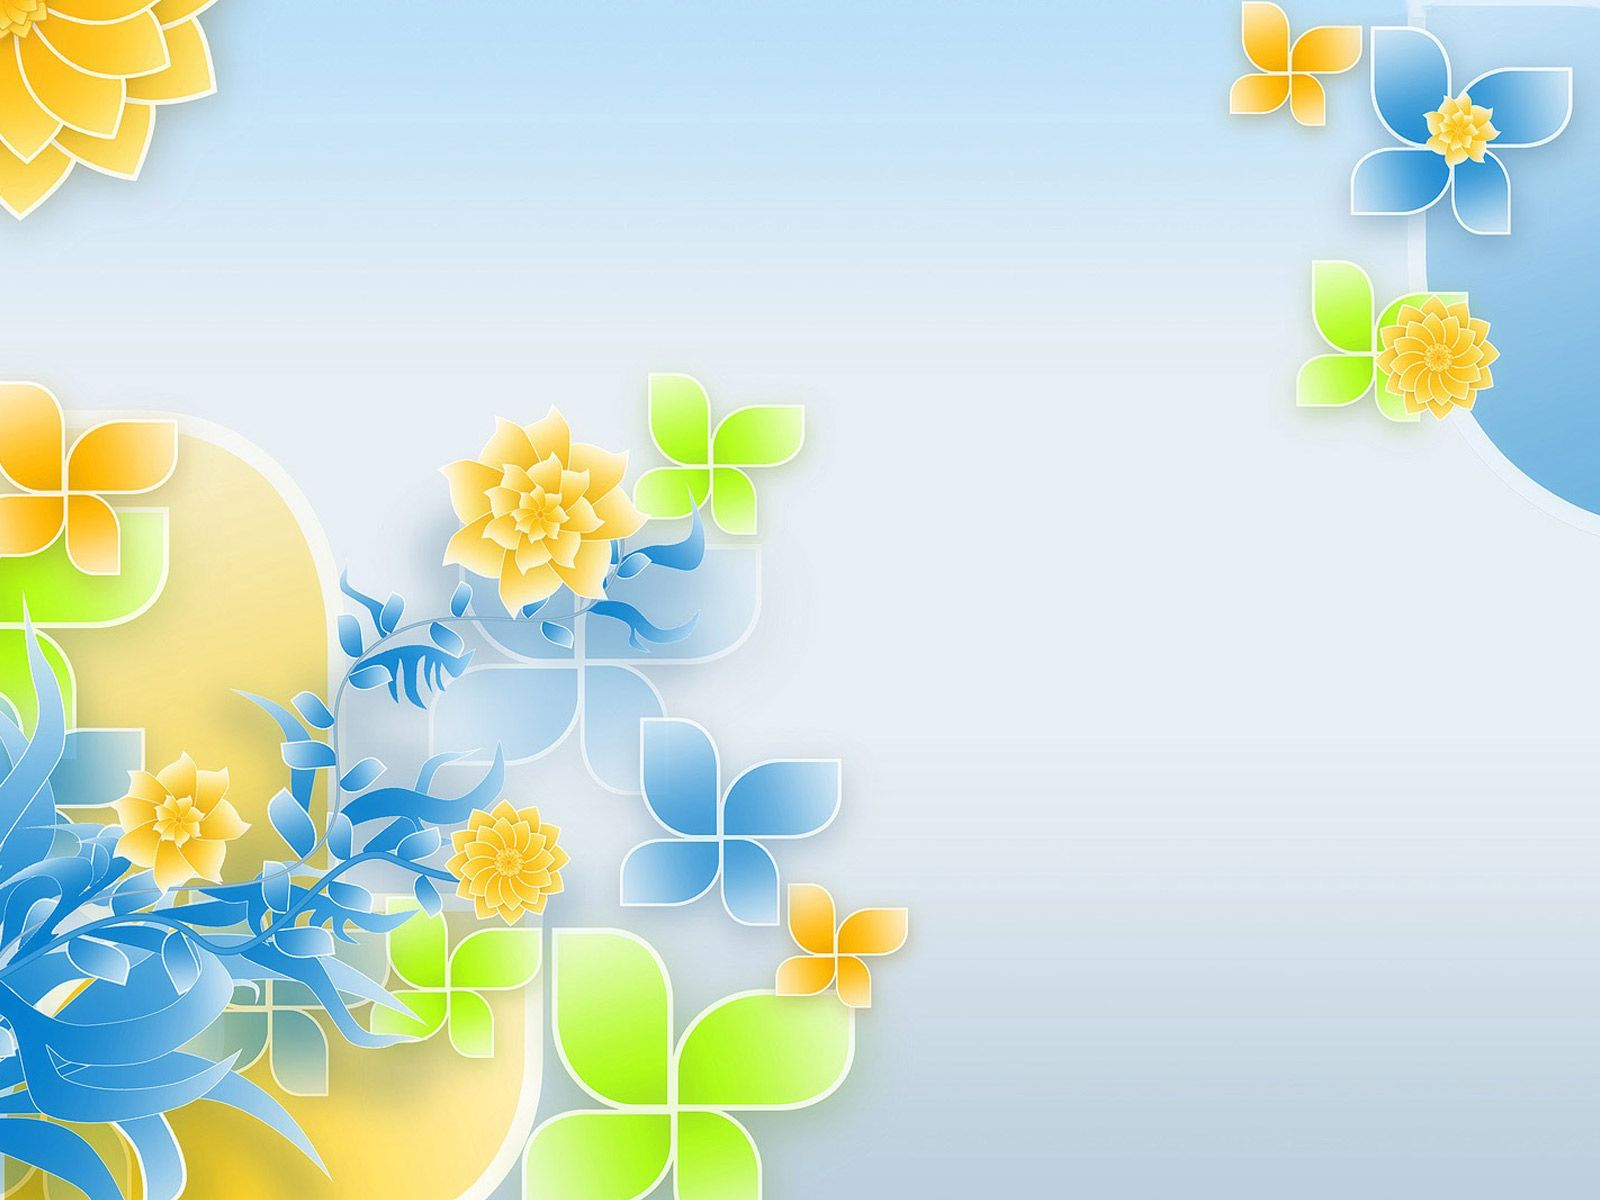 Floral patterns PowerPoint background. Available in 1600x1200 ...